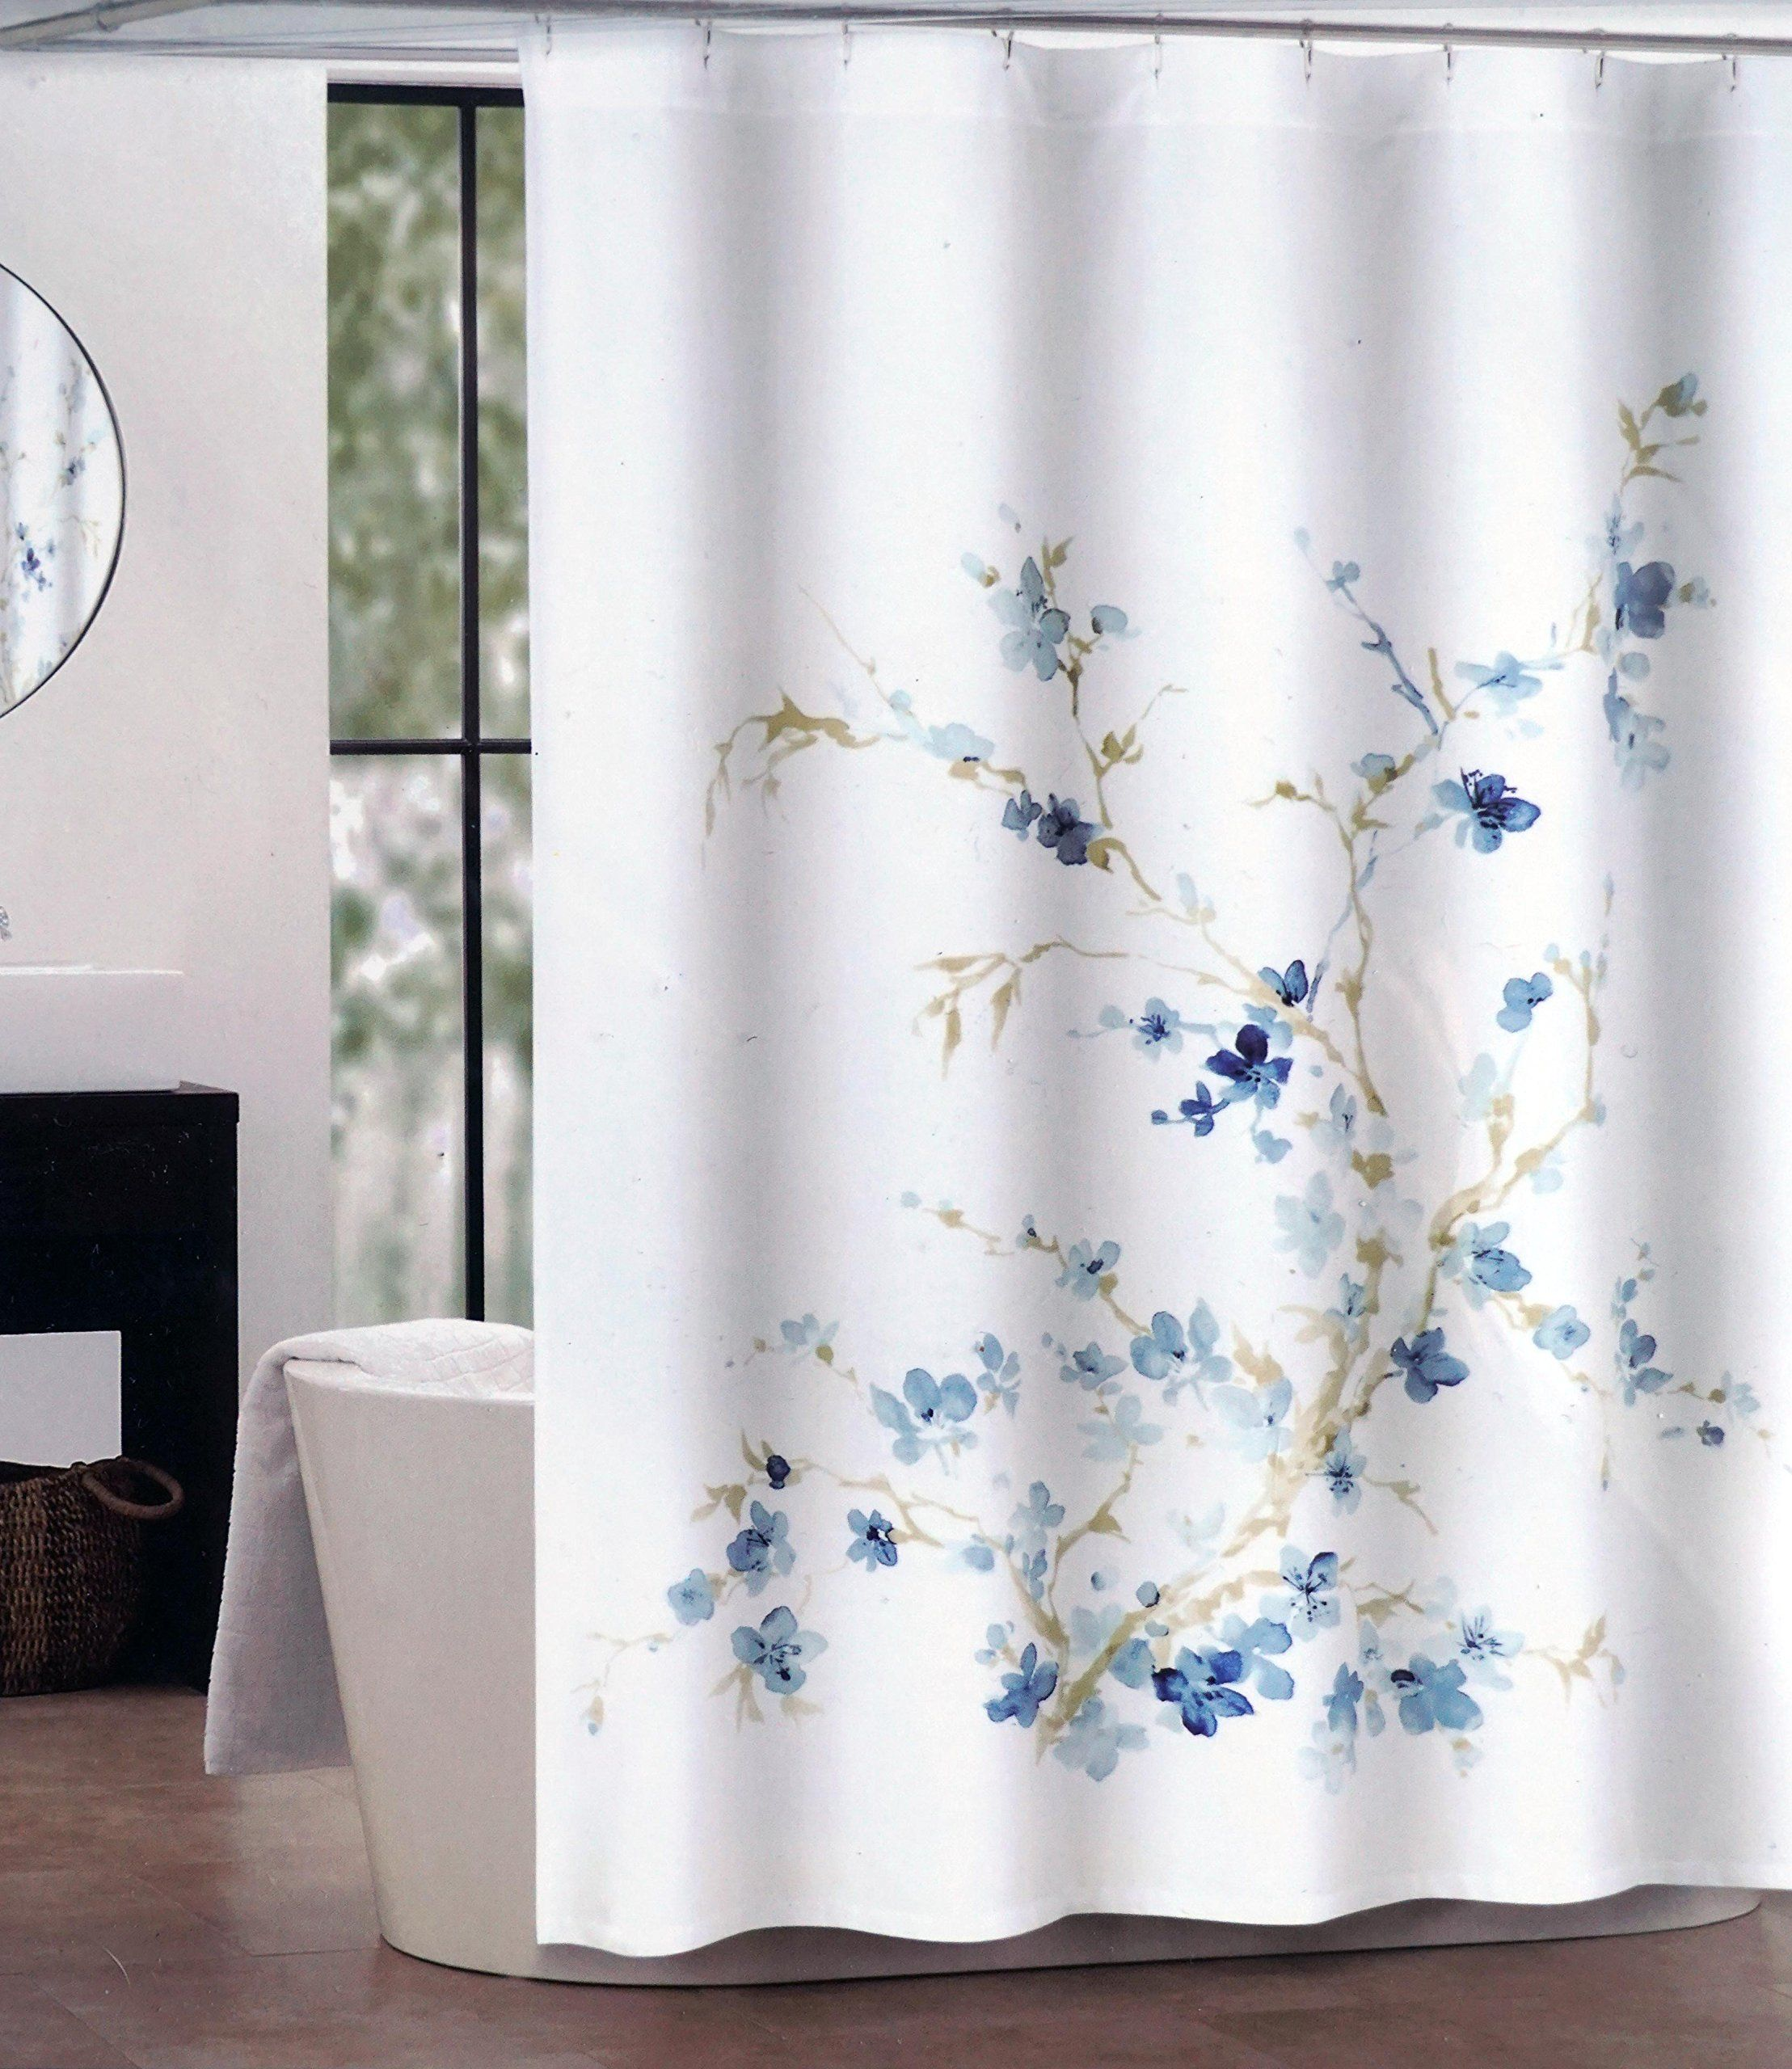 Tahari Fabric Shower Curtain Dark And Light Blue Floral Pattern - Beige and gray shower curtain